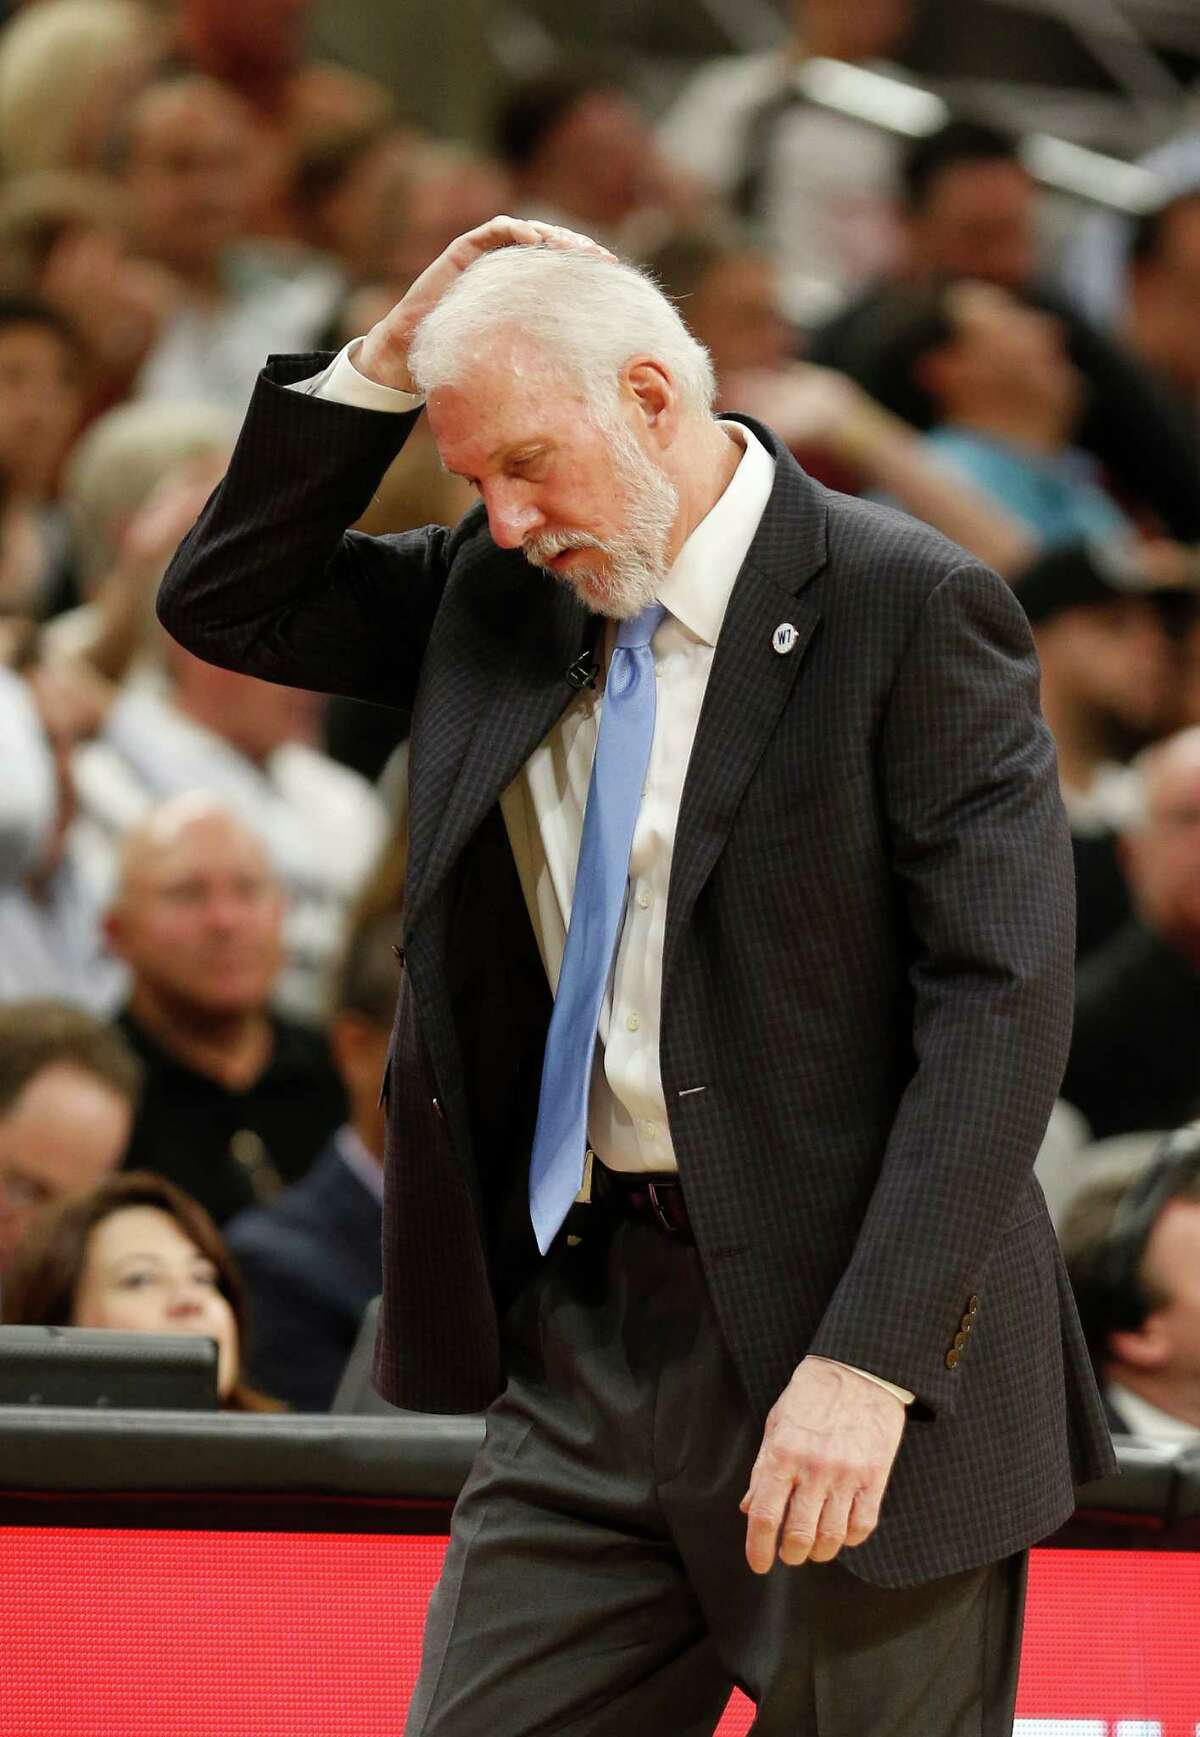 SAN ANTONIO,TX - MAY 10: Head coach Gregg Popovich of the San Antonio Spurs scratches his head in the closing seconds of the game against the Oklahoma City Thunder in game Five of the Western Conference Semifinals during the 2016 NBA Playoffs at AT&T Center on May 10, 2016 in San Antonio, Texas. NOTE TO USER: User expressly acknowledges and agrees that , by downloading and or using this photograph, User is consenting to the terms and conditions of the Getty Images License Agreement.